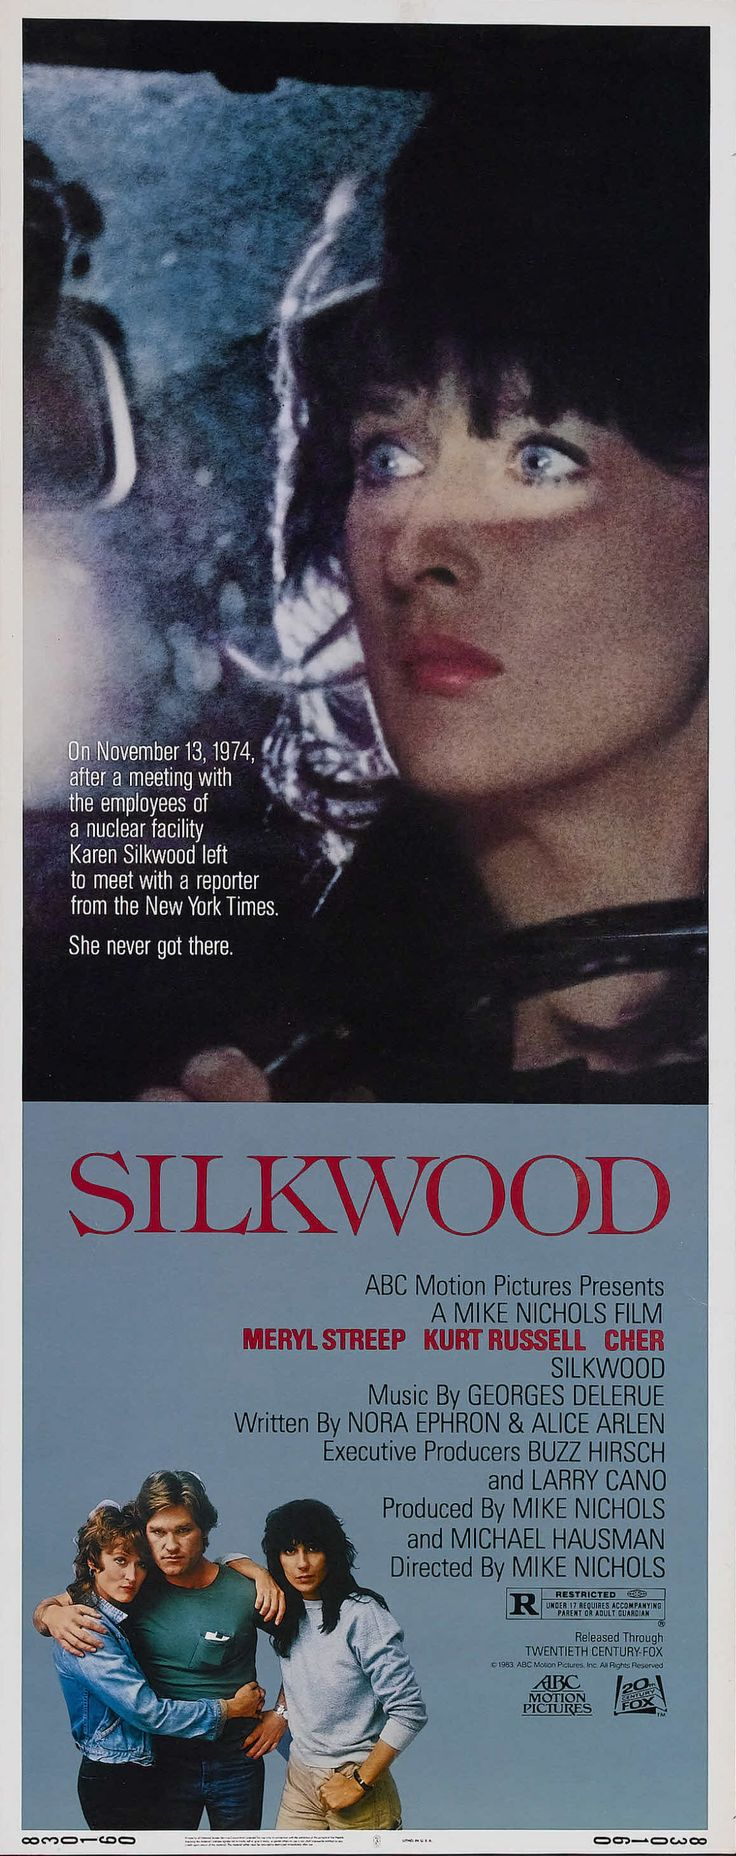 """""""Silkwood"""" (1983). COUNTRY: United States. DIRECTOR: Mike Nichols. CAST: Meryl Streep, Kurt Russell, Cher, Craig T. Nelson, Fred Ward, Diana Scarwid, Ron Silver, Josef Sommer, Bruce McGill, David Strathairn, Charles Hallahan, M. Emmet Walsh, James Rebhorn, Will Patton"""